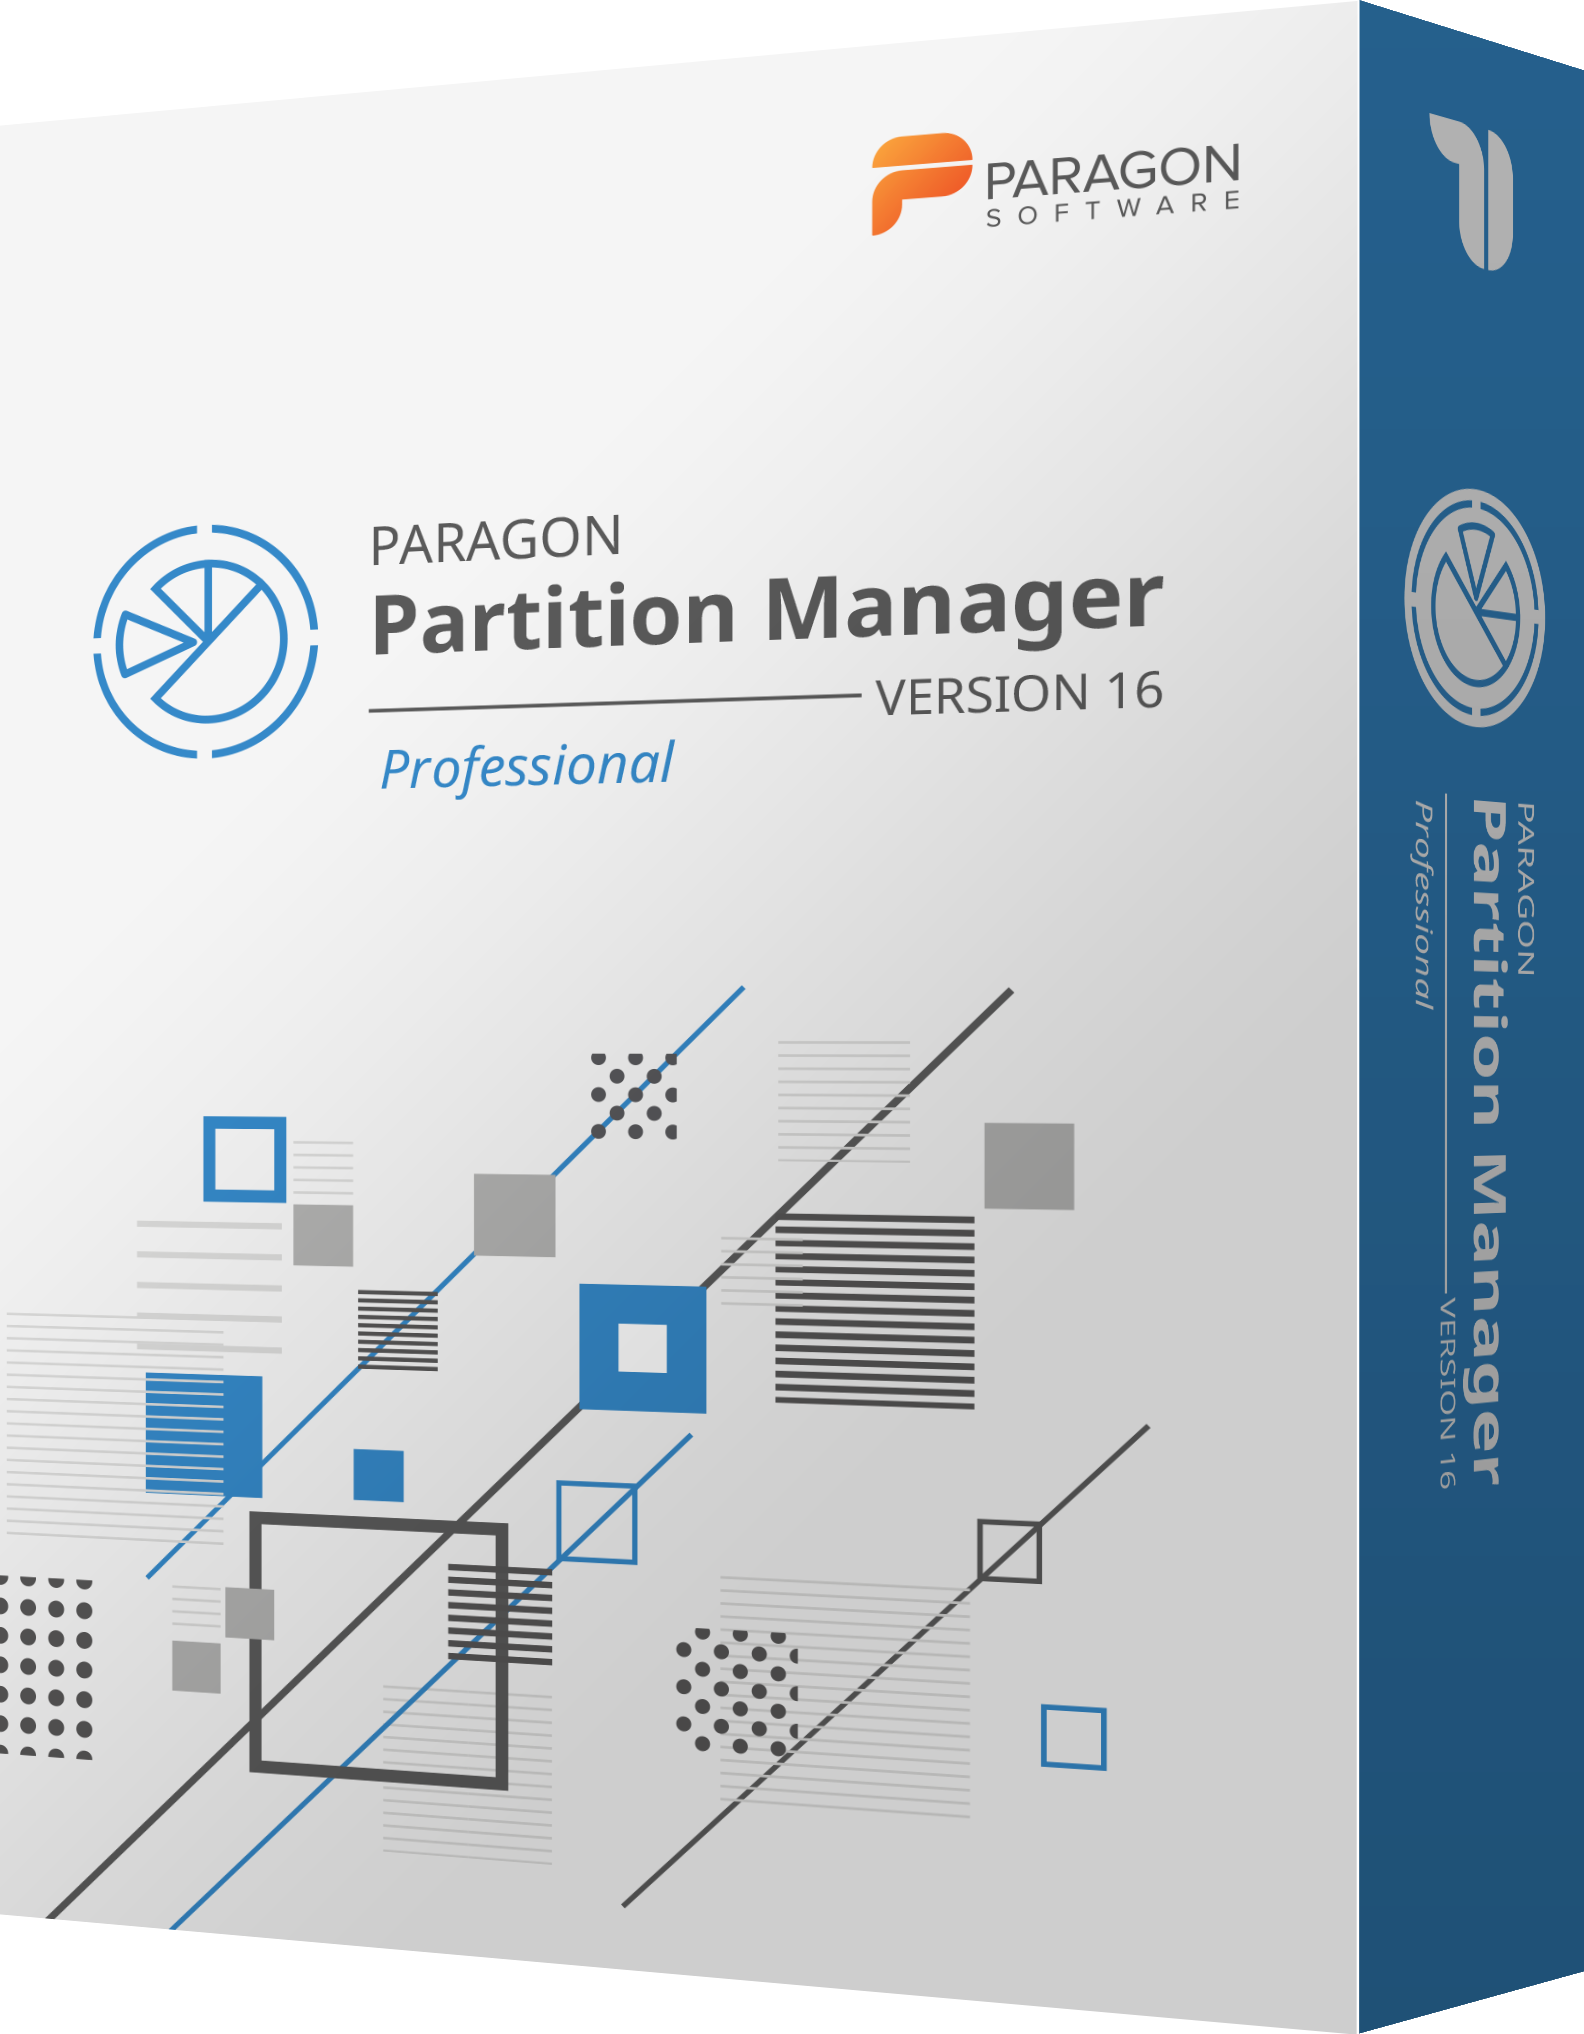 Paragon Software | About